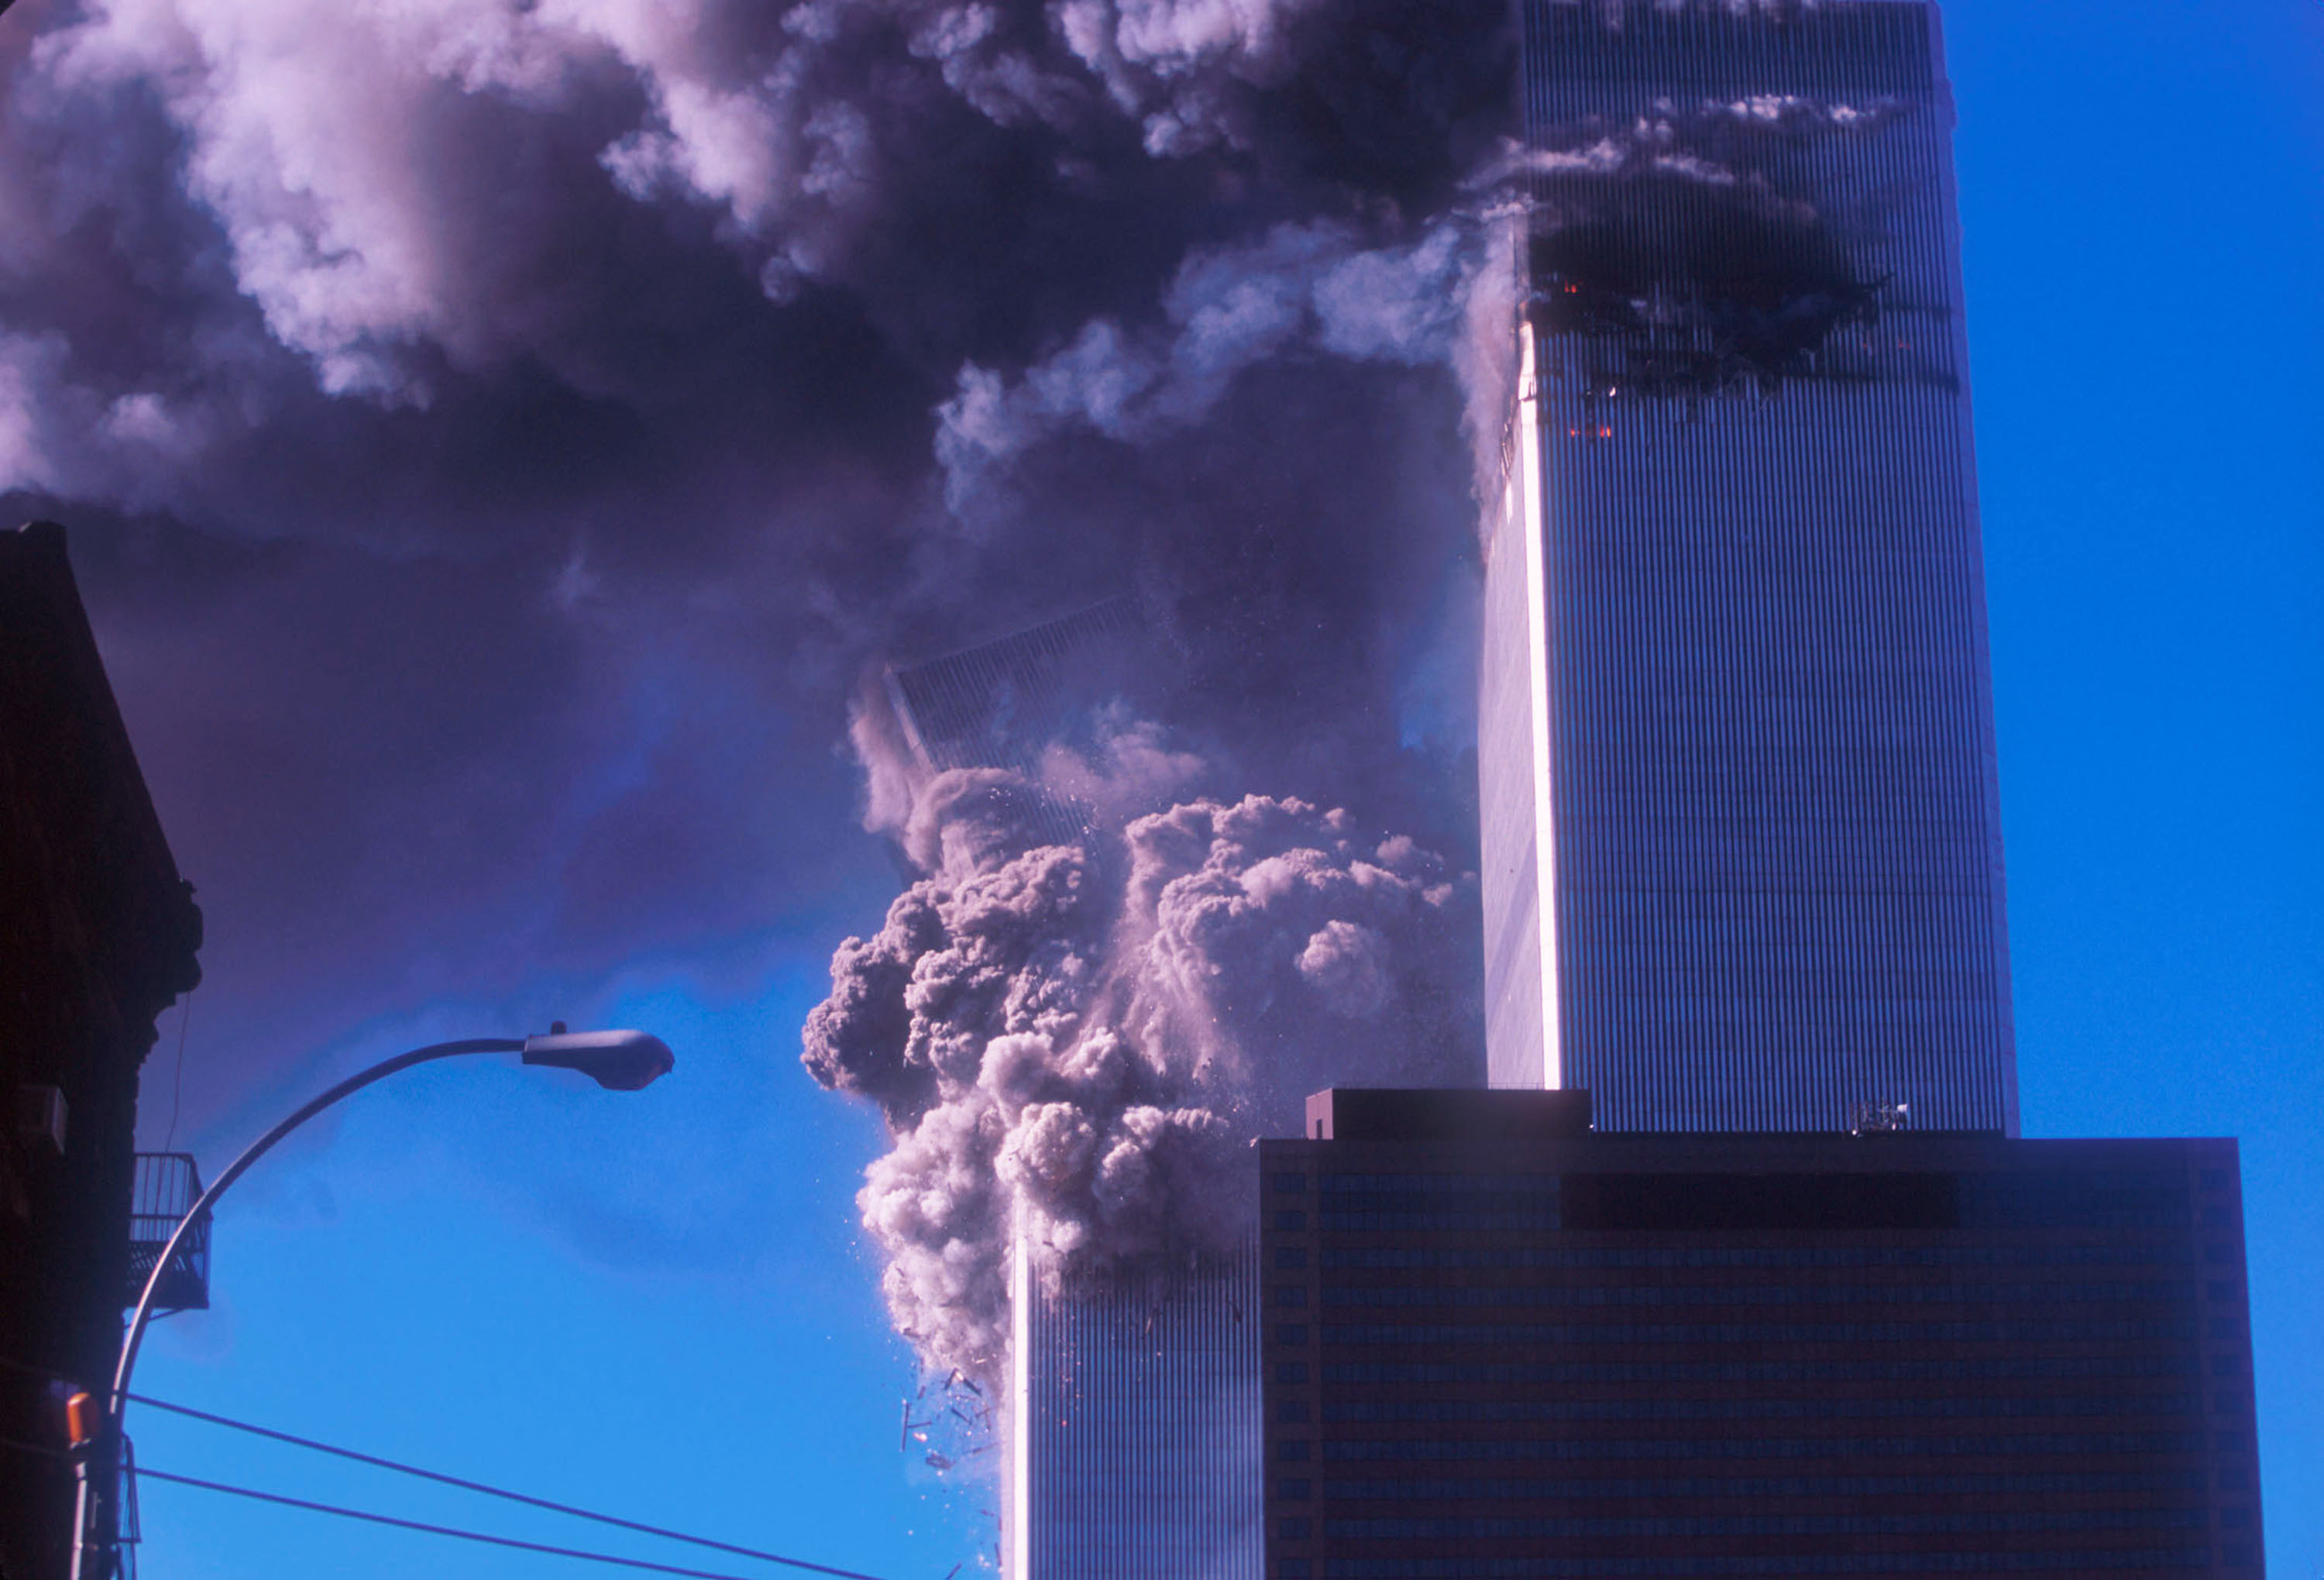 Although it was hit after the North Tower, the South Tower of the World Trade Center was the first to crash to the ground on September 11.